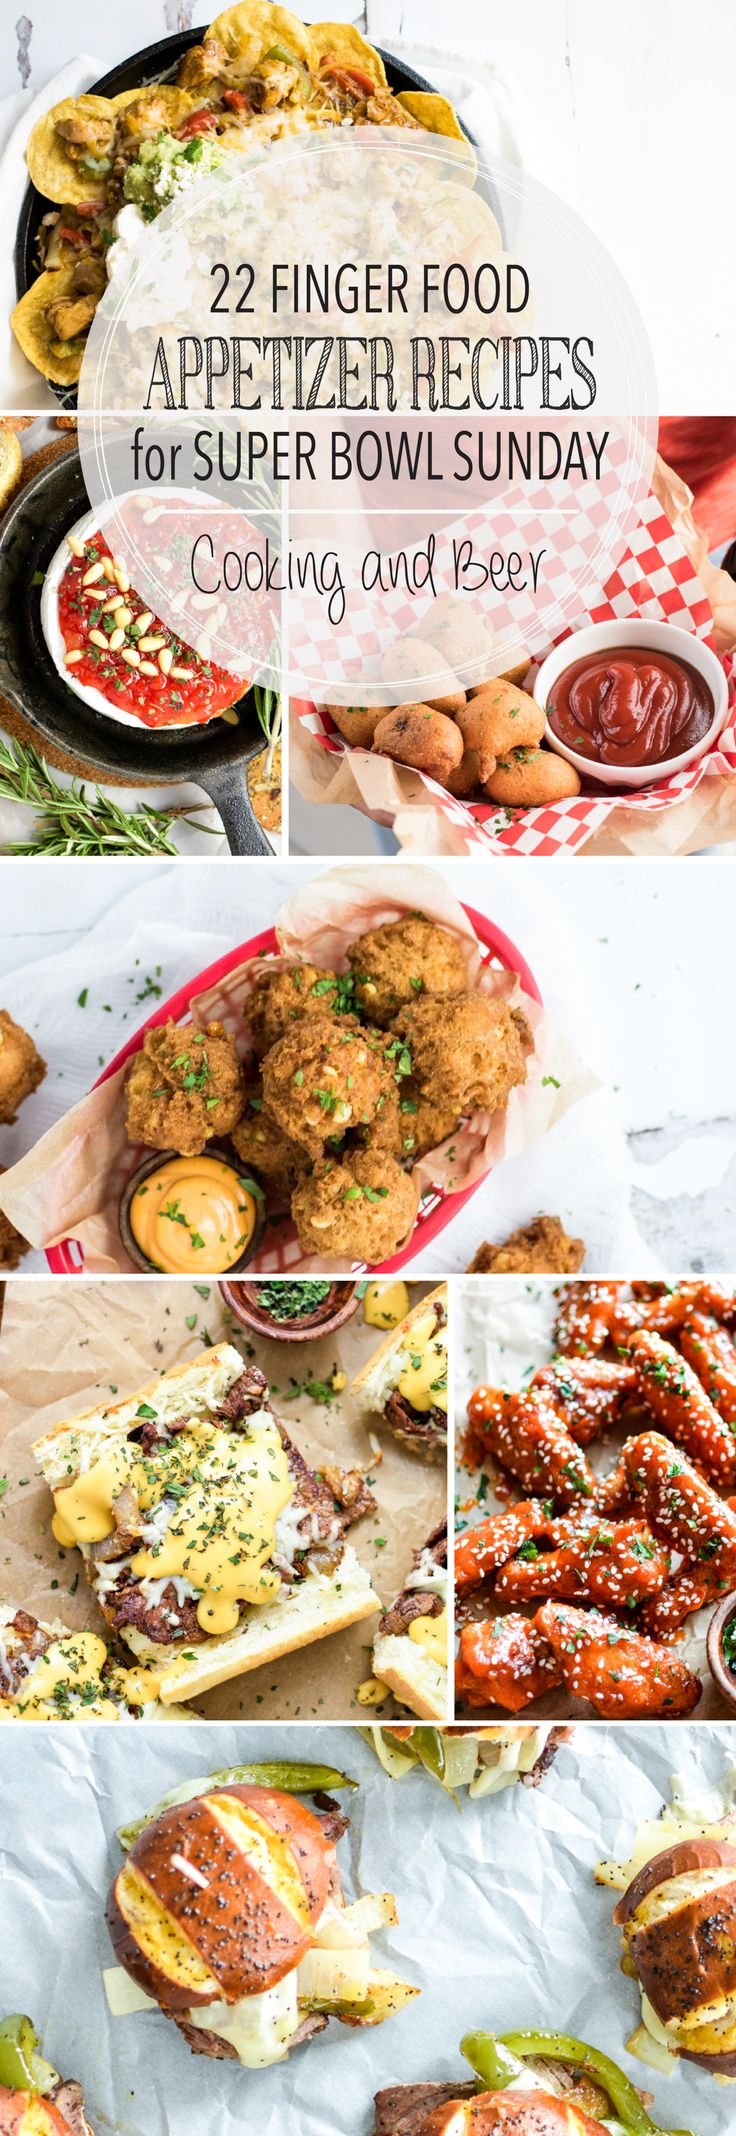 From fritters to nachos and wings to sliders, here are 22 Finger Food Appetizer Recipes for Super Bowl Sunday! Add them to your party menus ASAP!